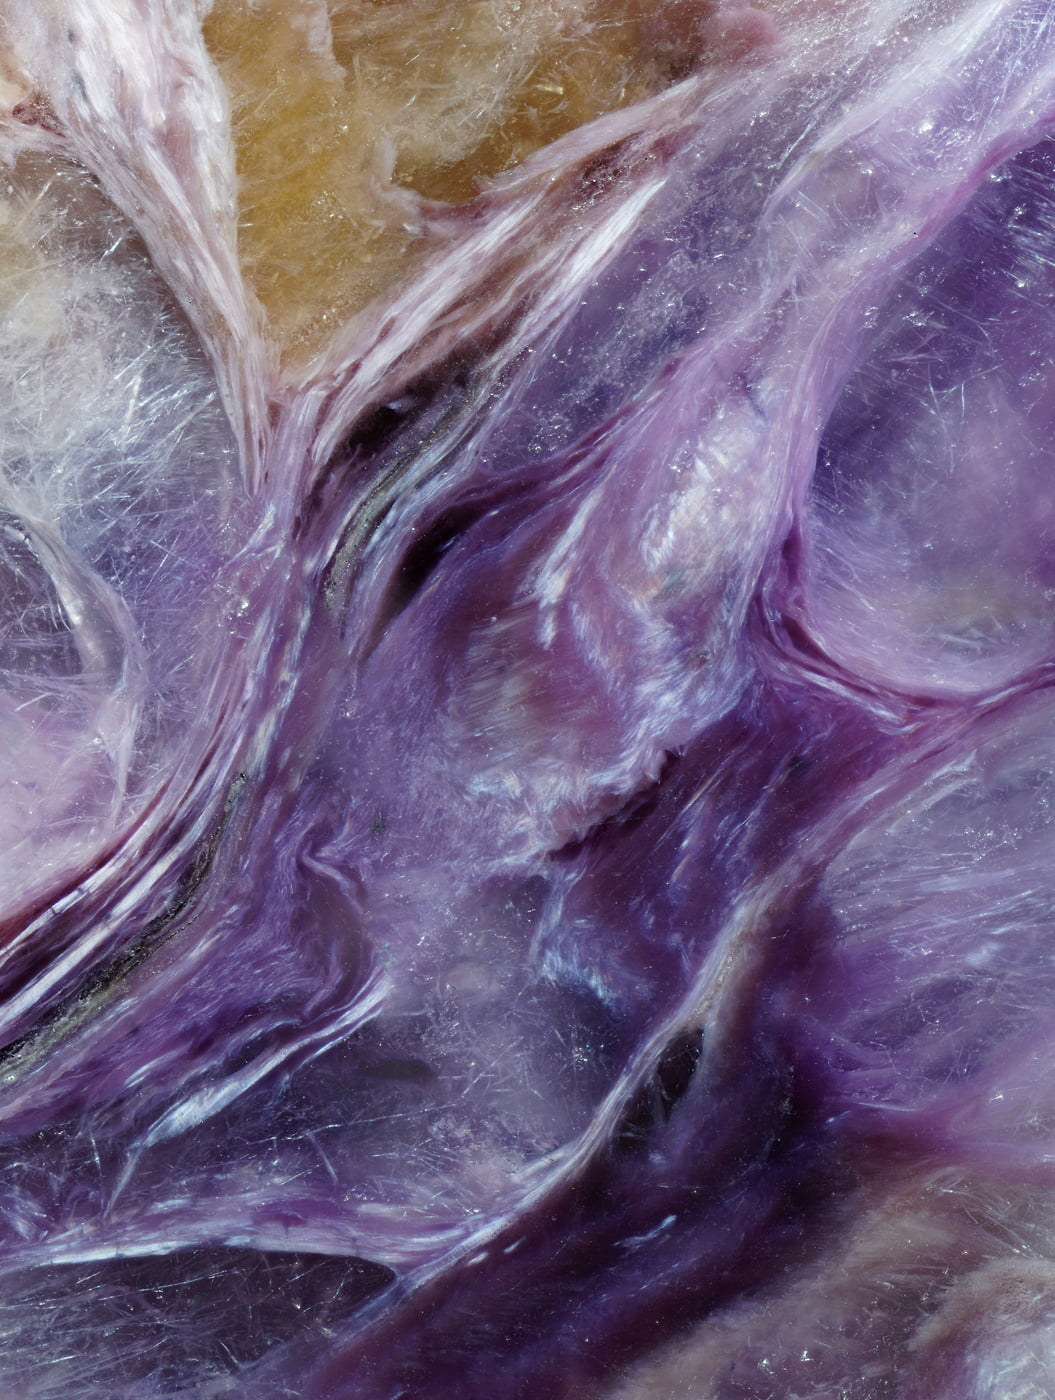 421 megapixels! A very high resolution abstract nature photo of a gemstone; VAST photo and fine art print created by Steph Mantis